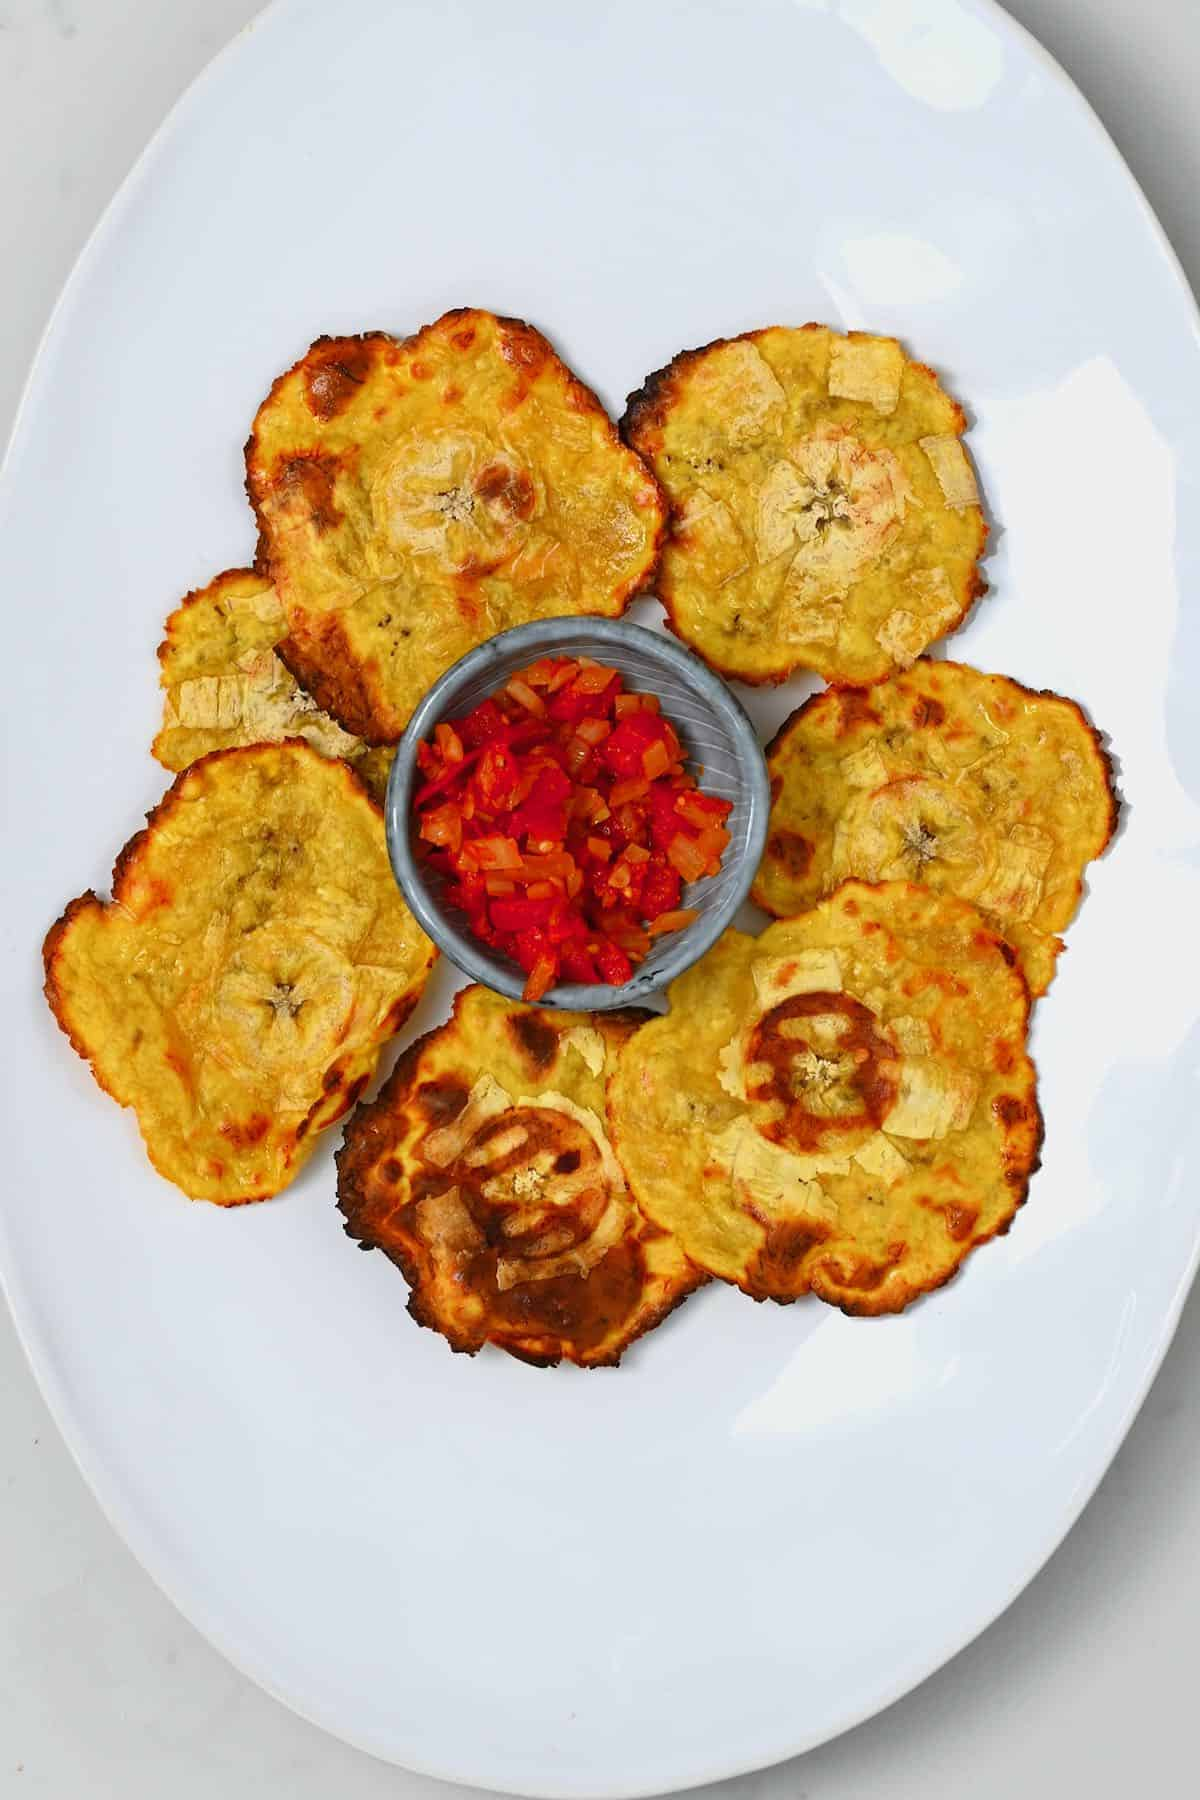 Plantain chips and red salsa